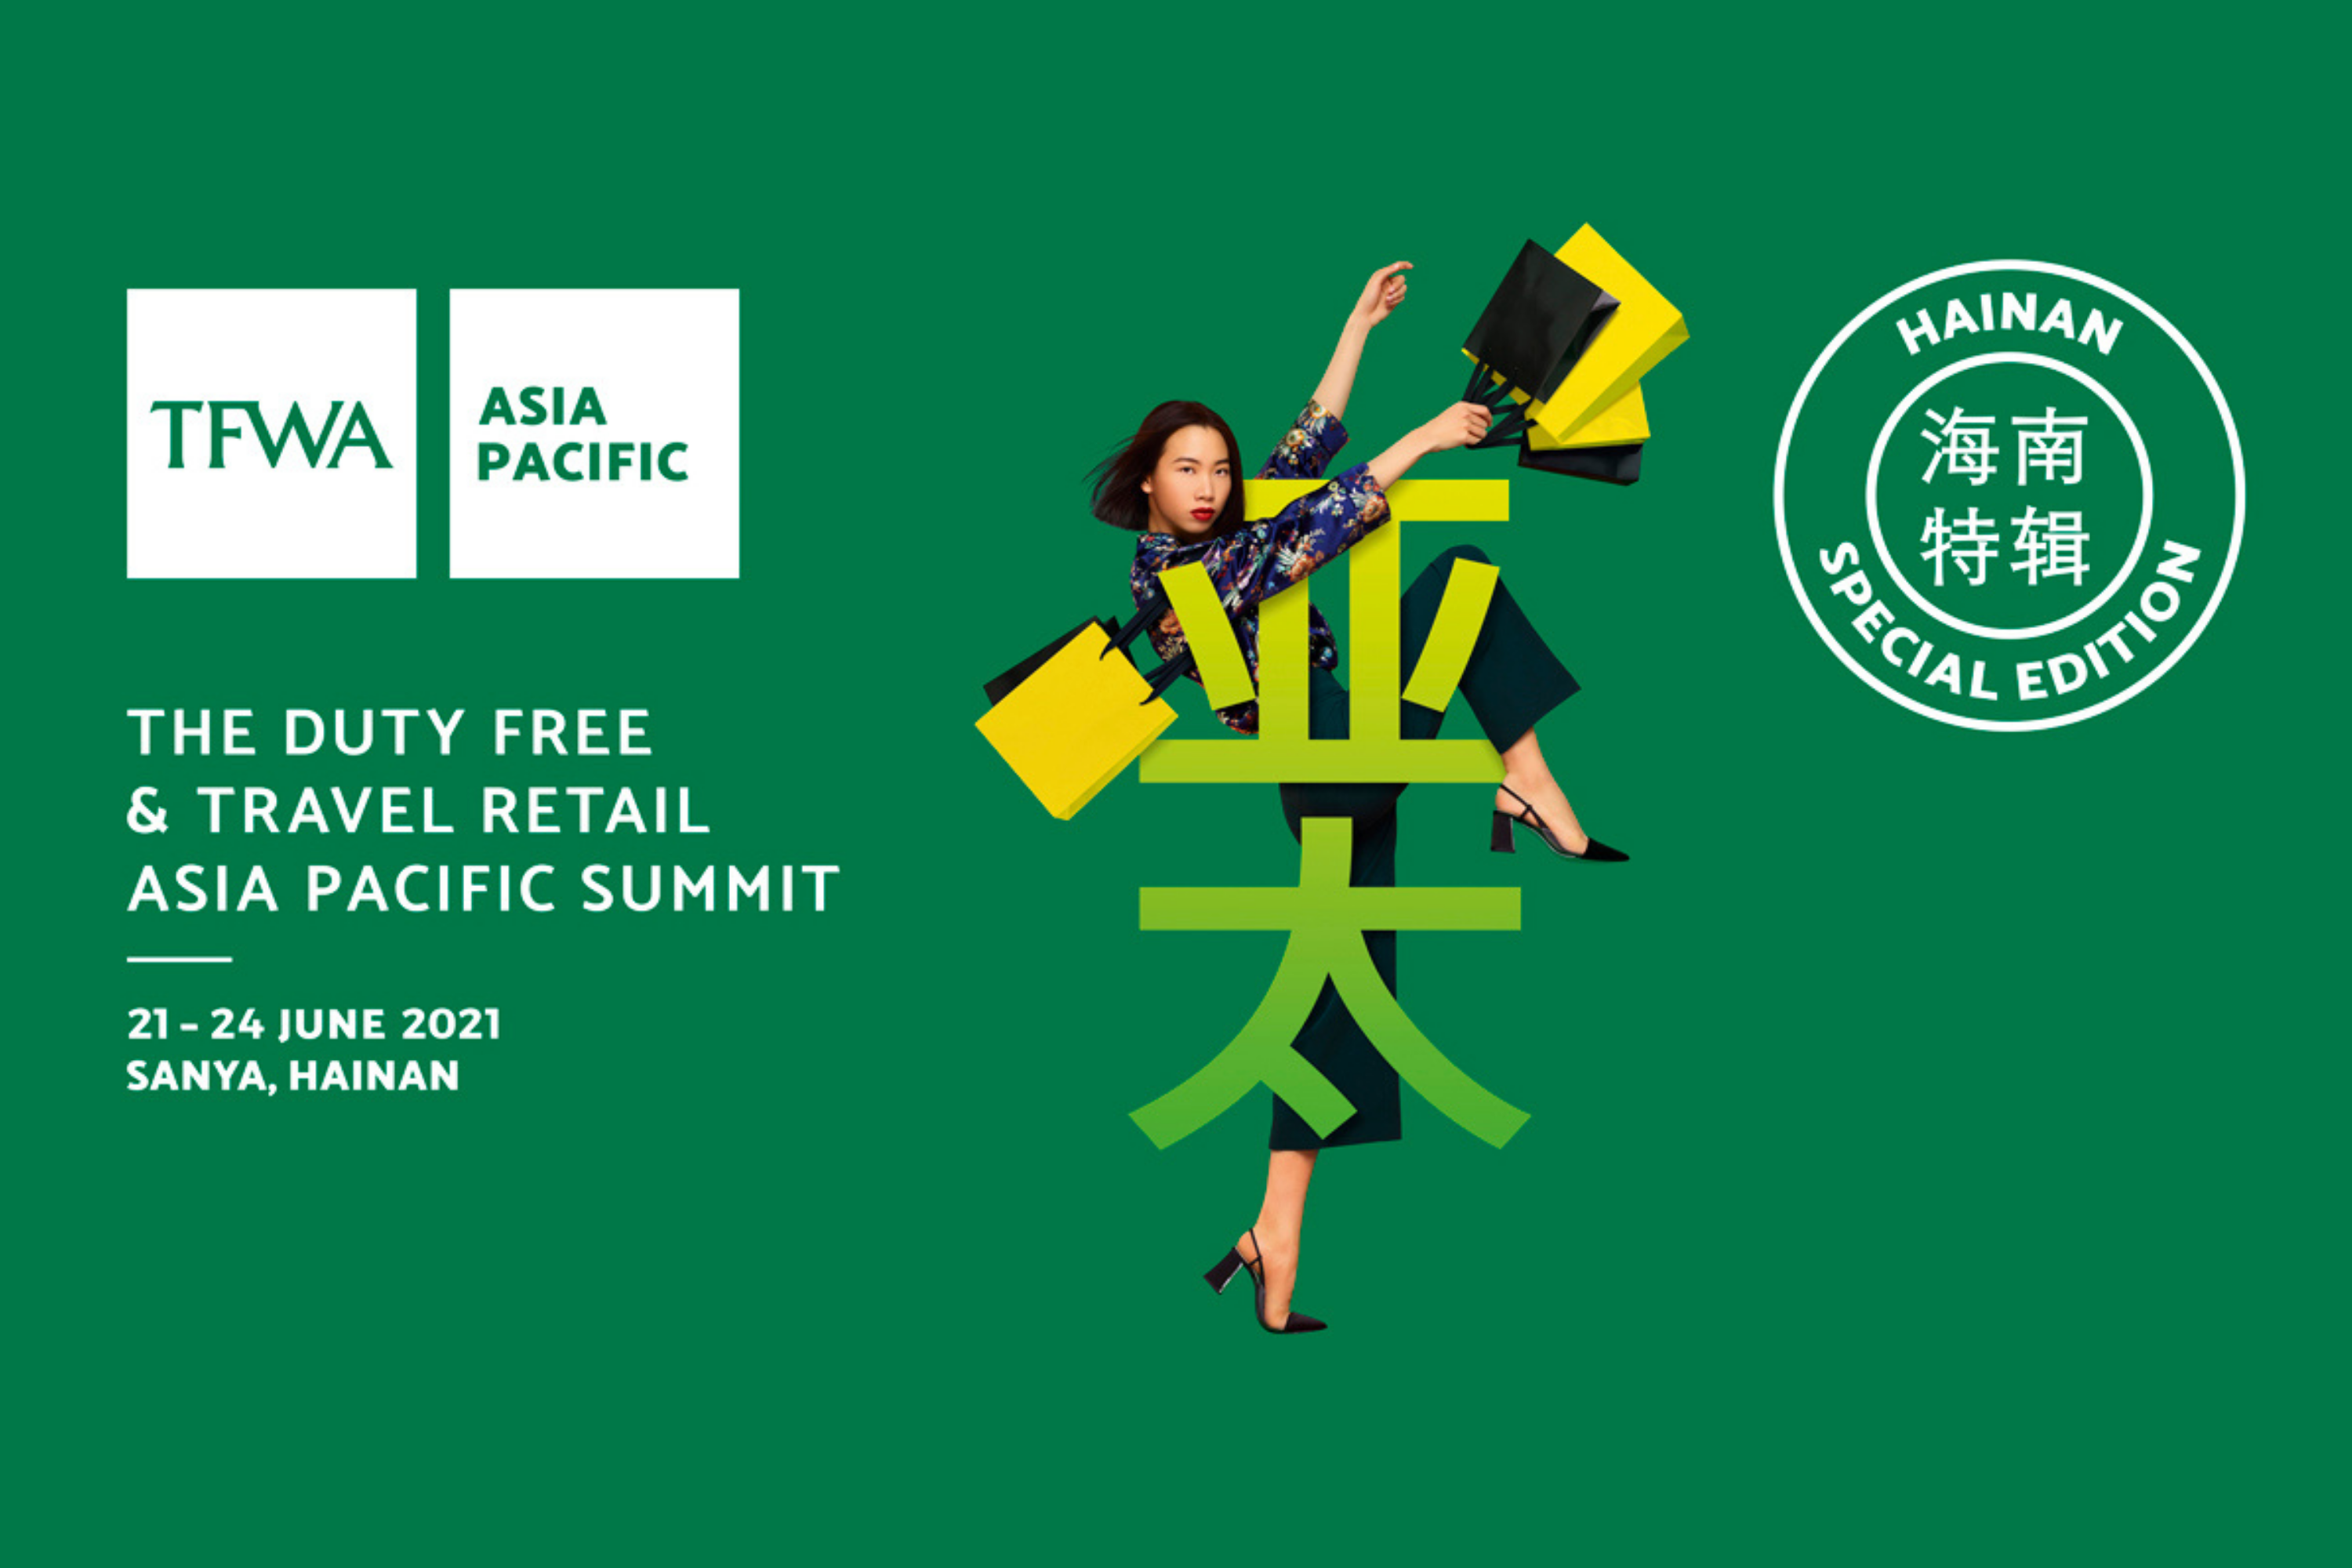 TFWA Asia Pacific Hainan Special Edition moves to June